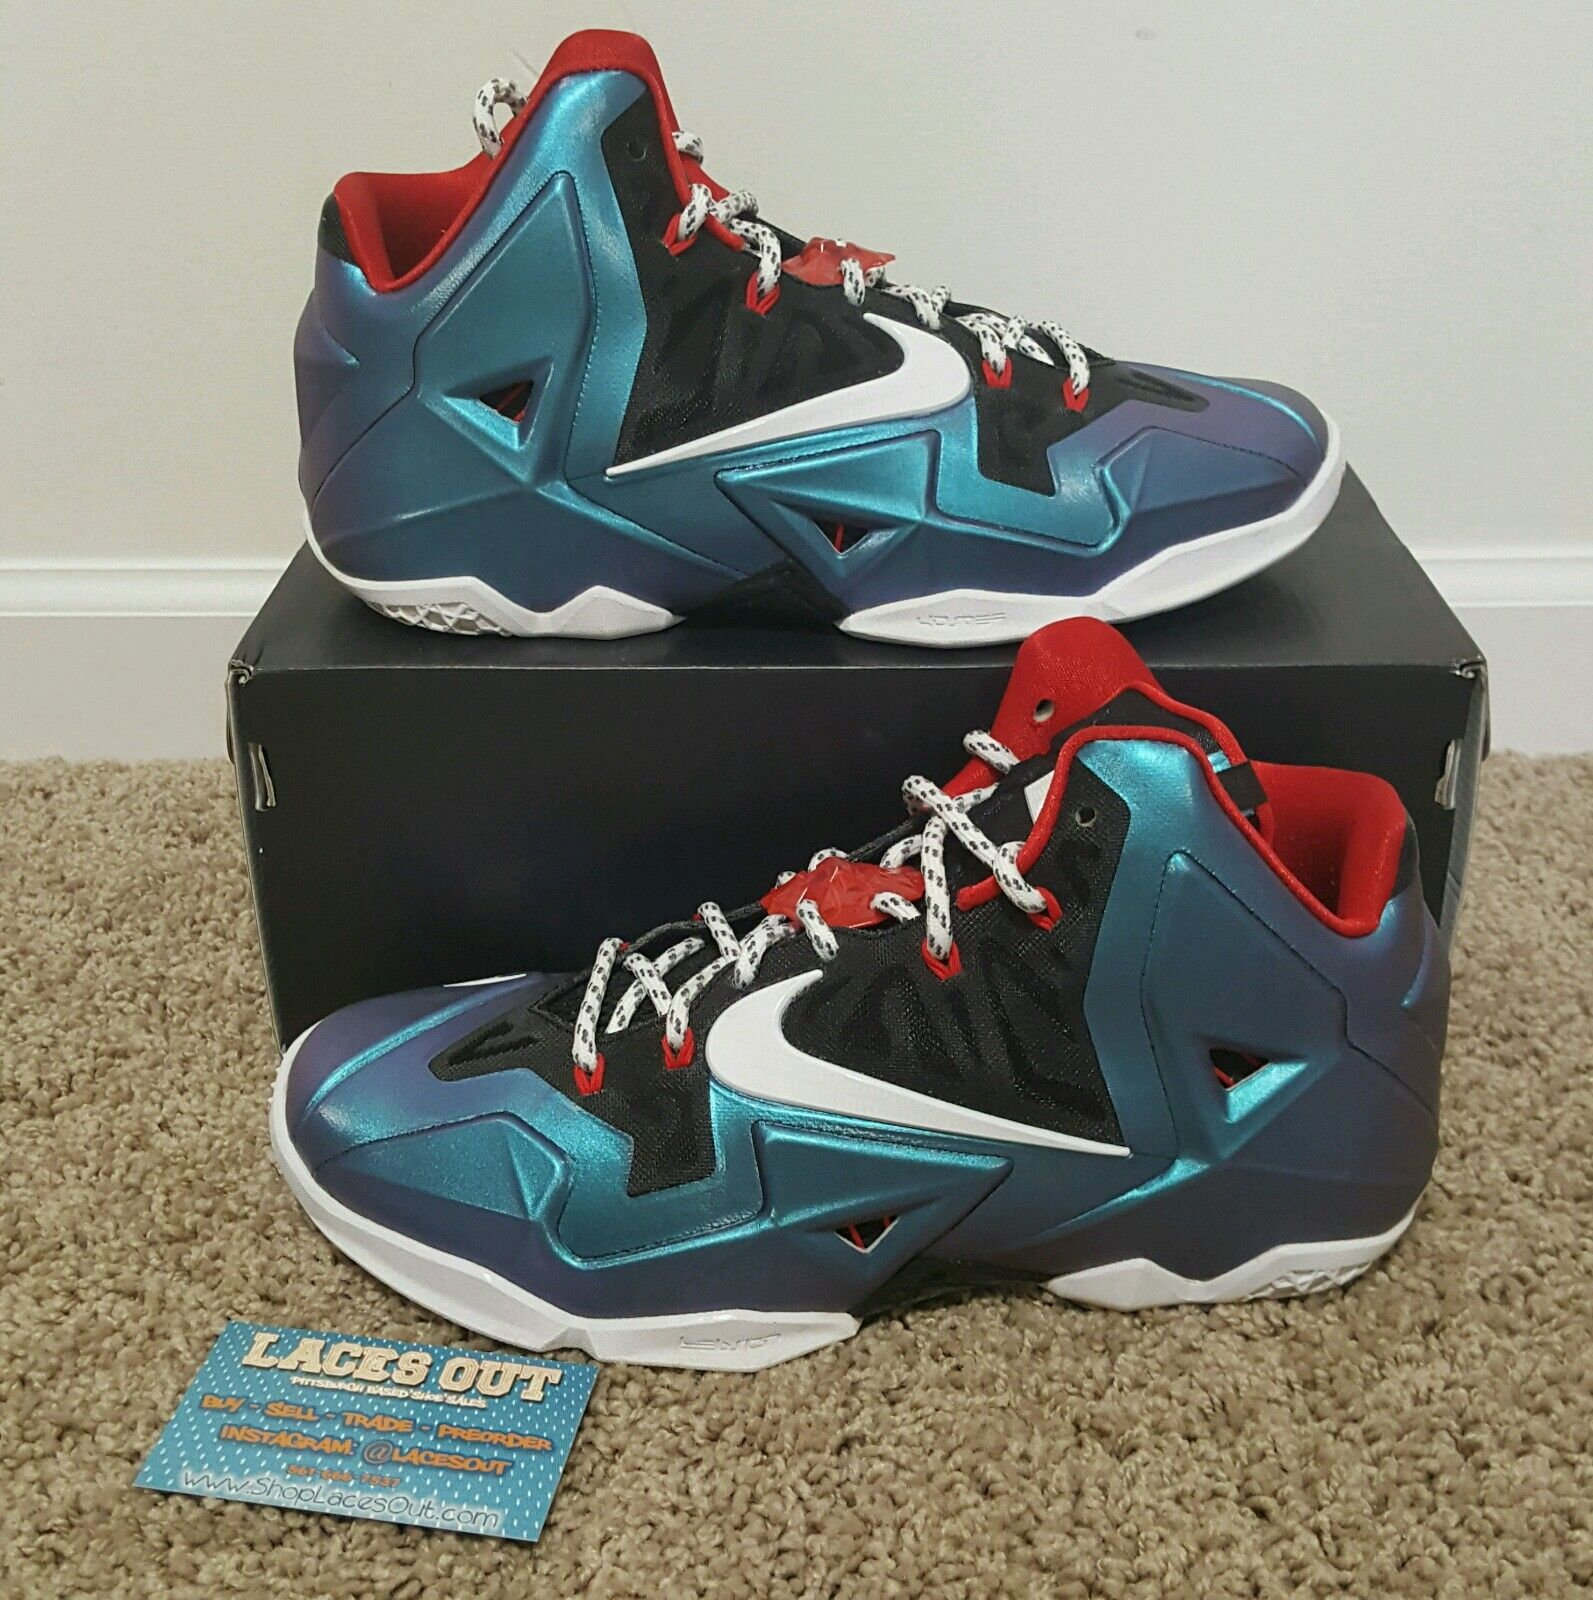 Lebron XI 11 iD Red bluee Purple Metallic size 9 champ pack miami vice preheat